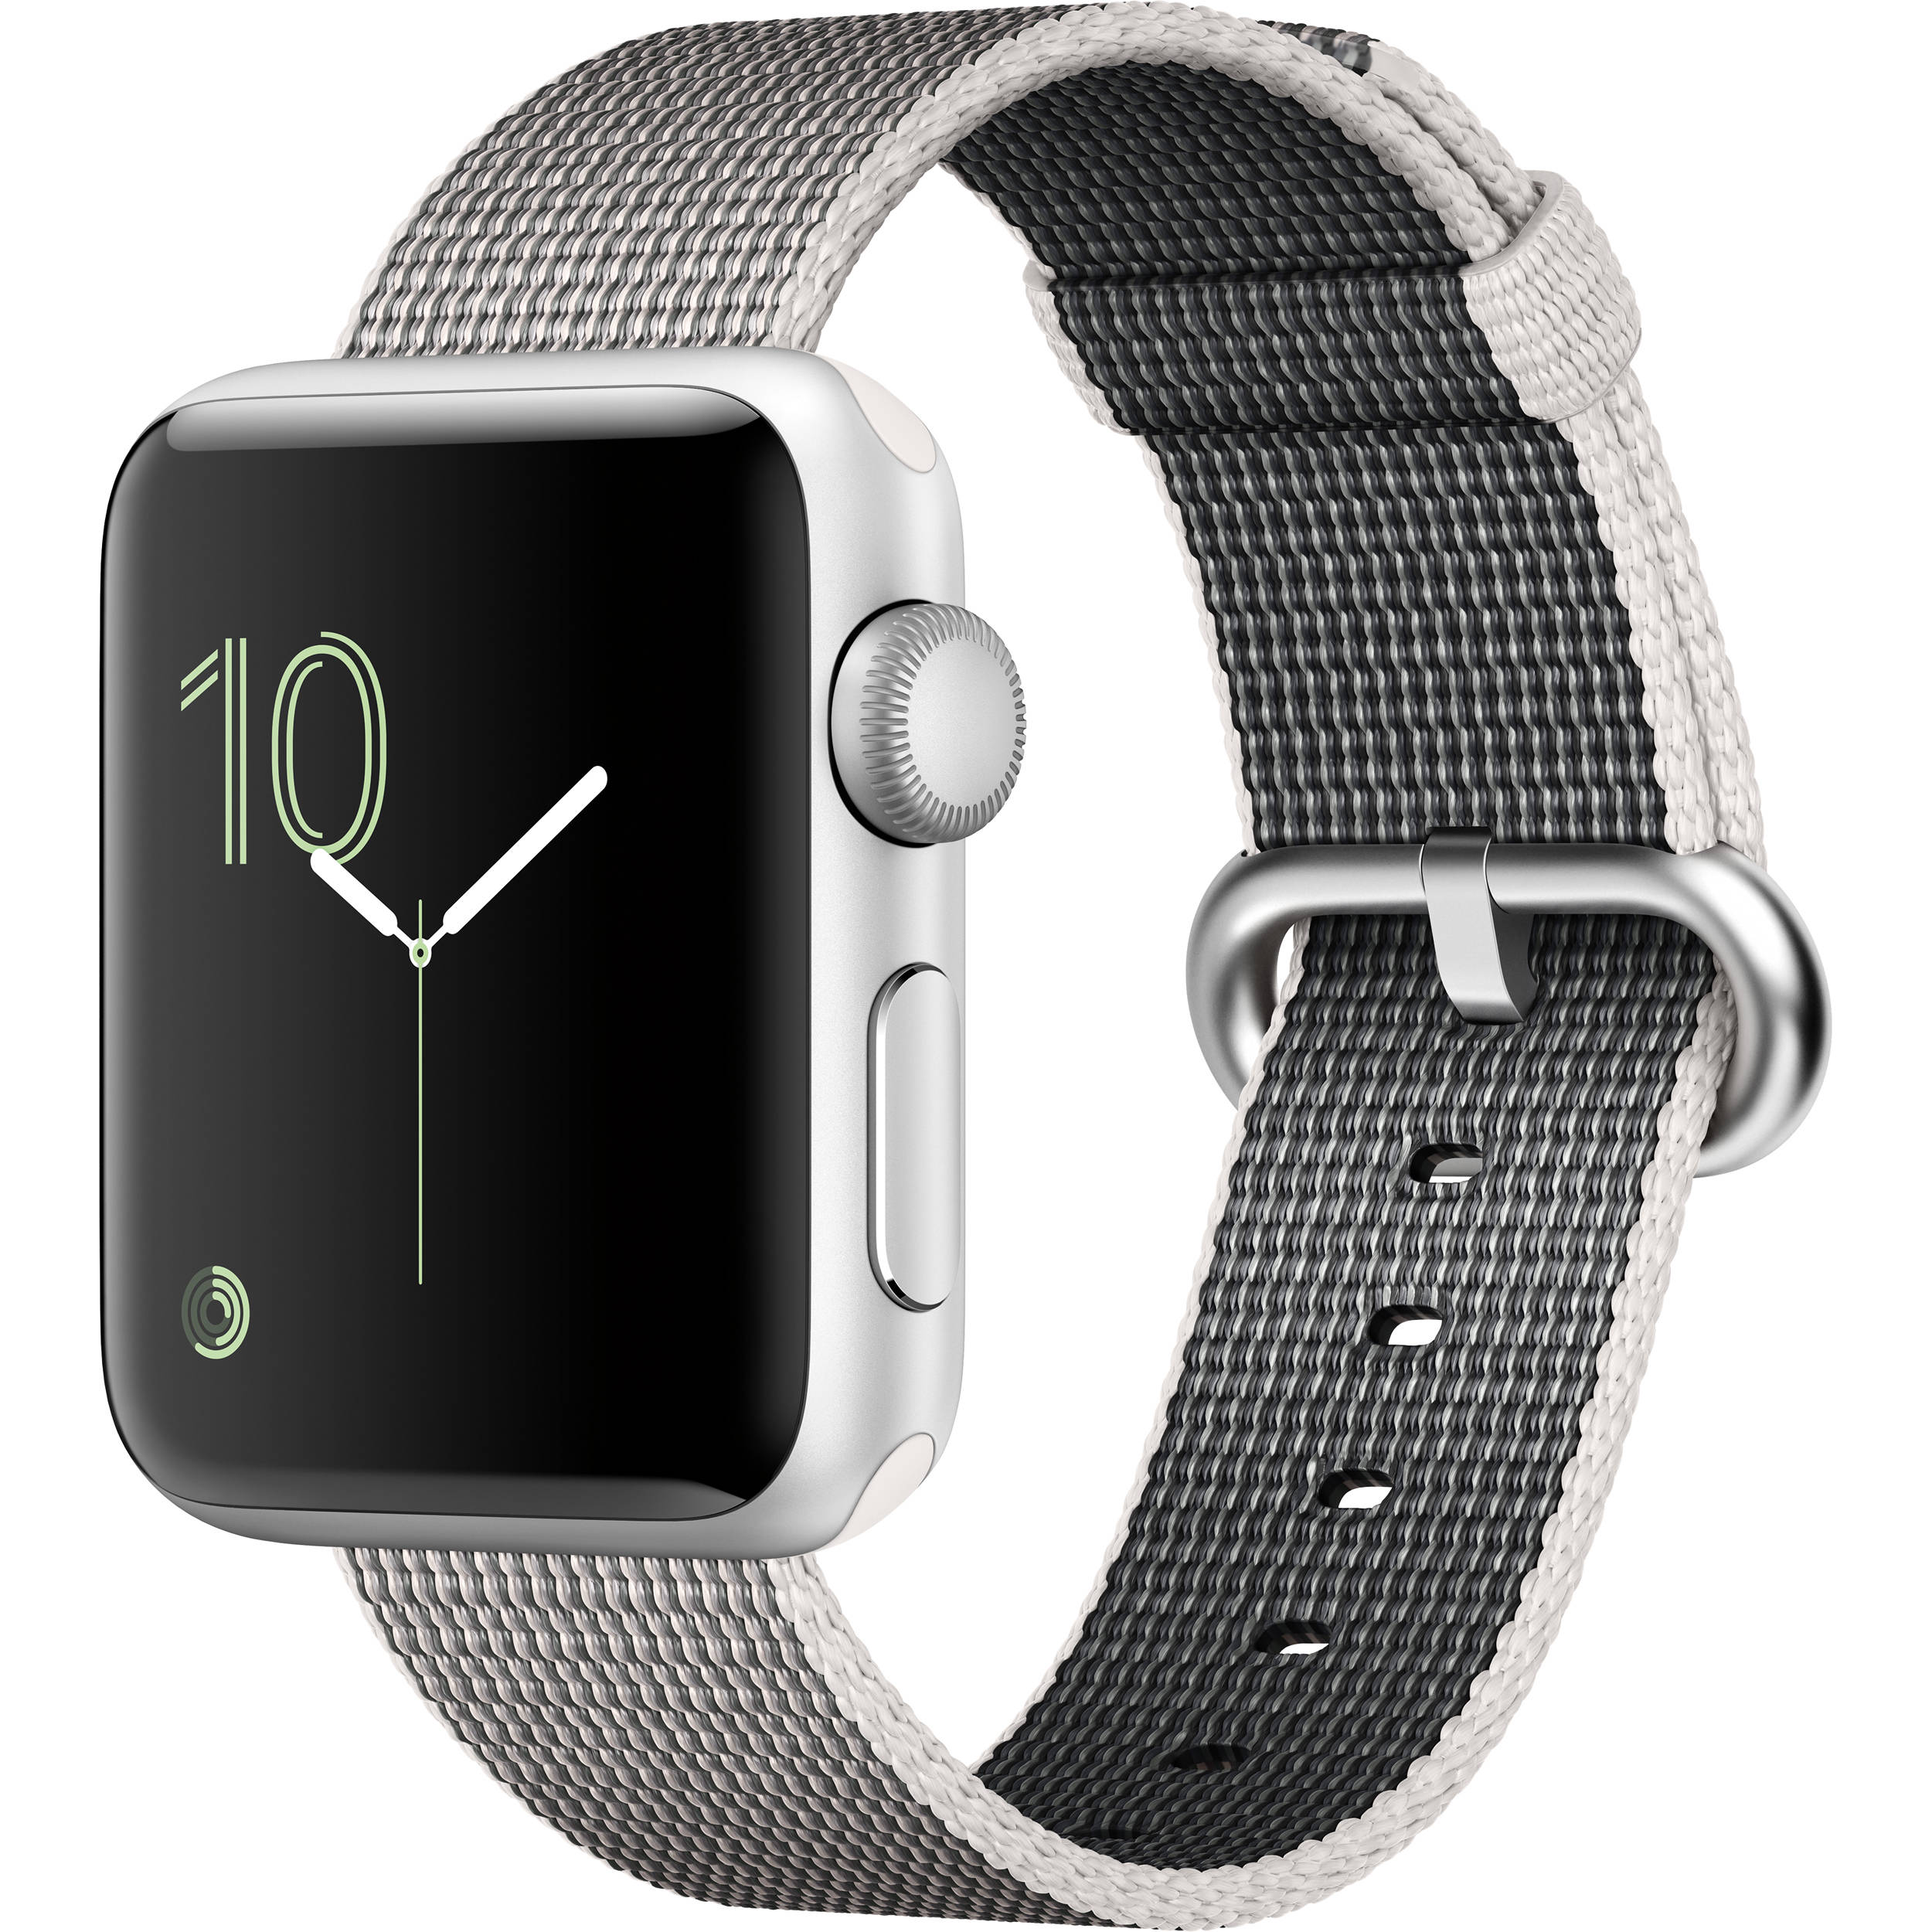 low priced 60fc4 edf78 Apple Watch Series 2 38mm Smartwatch (Silver Aluminum Case, Pearl Woven  Nylon Band)